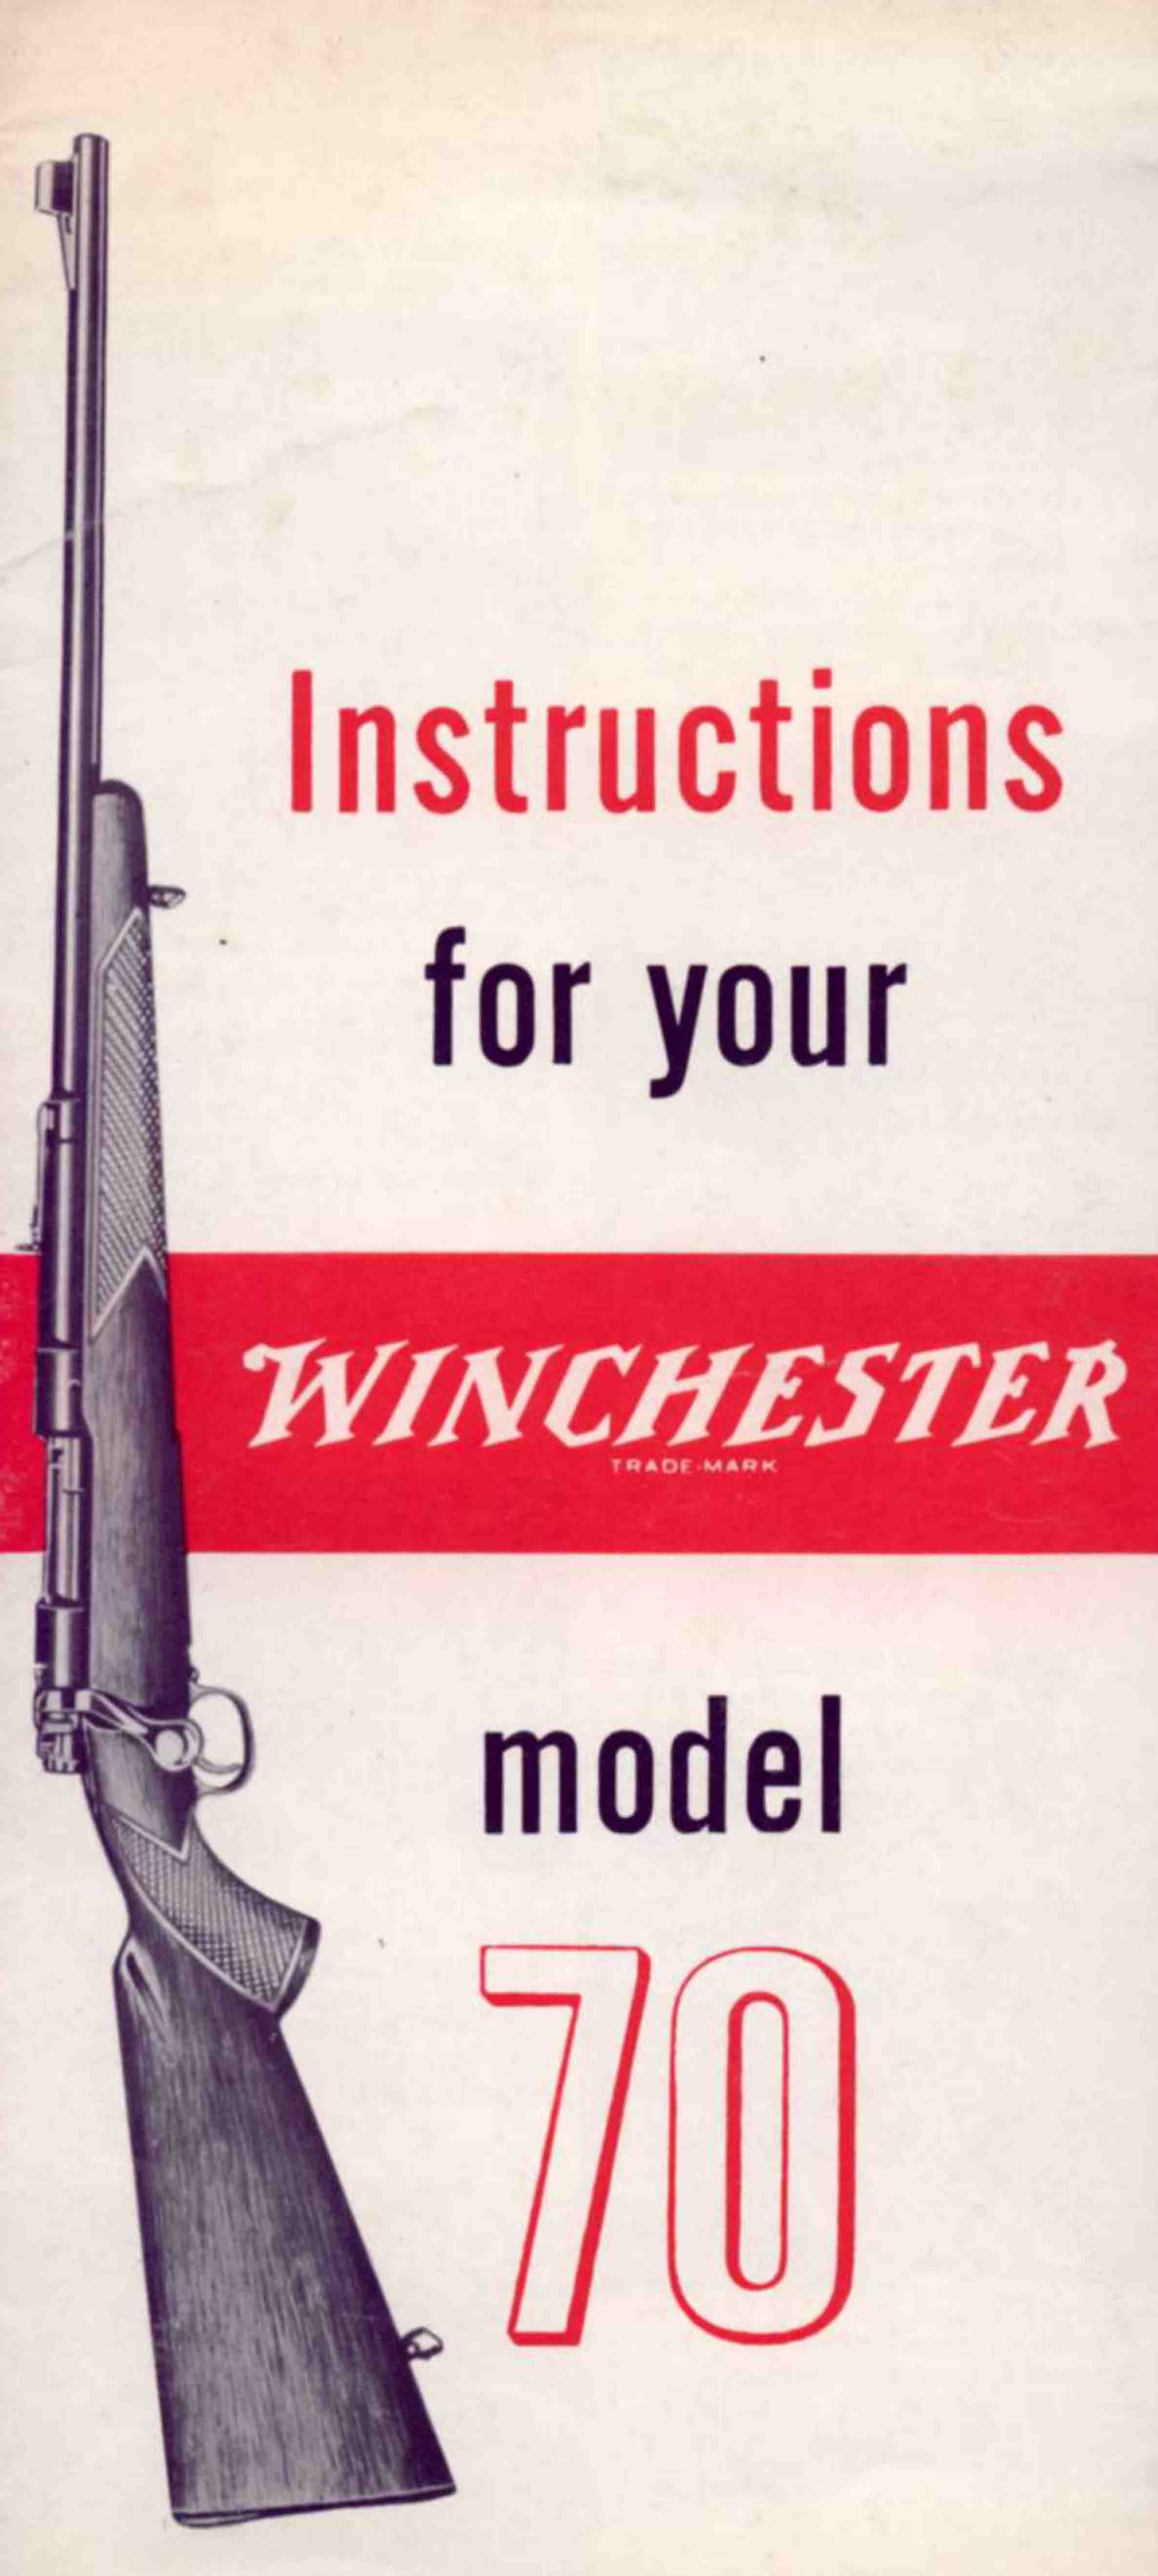 Cornell Publications LLC | Old Gun Manuals - featuring Walther